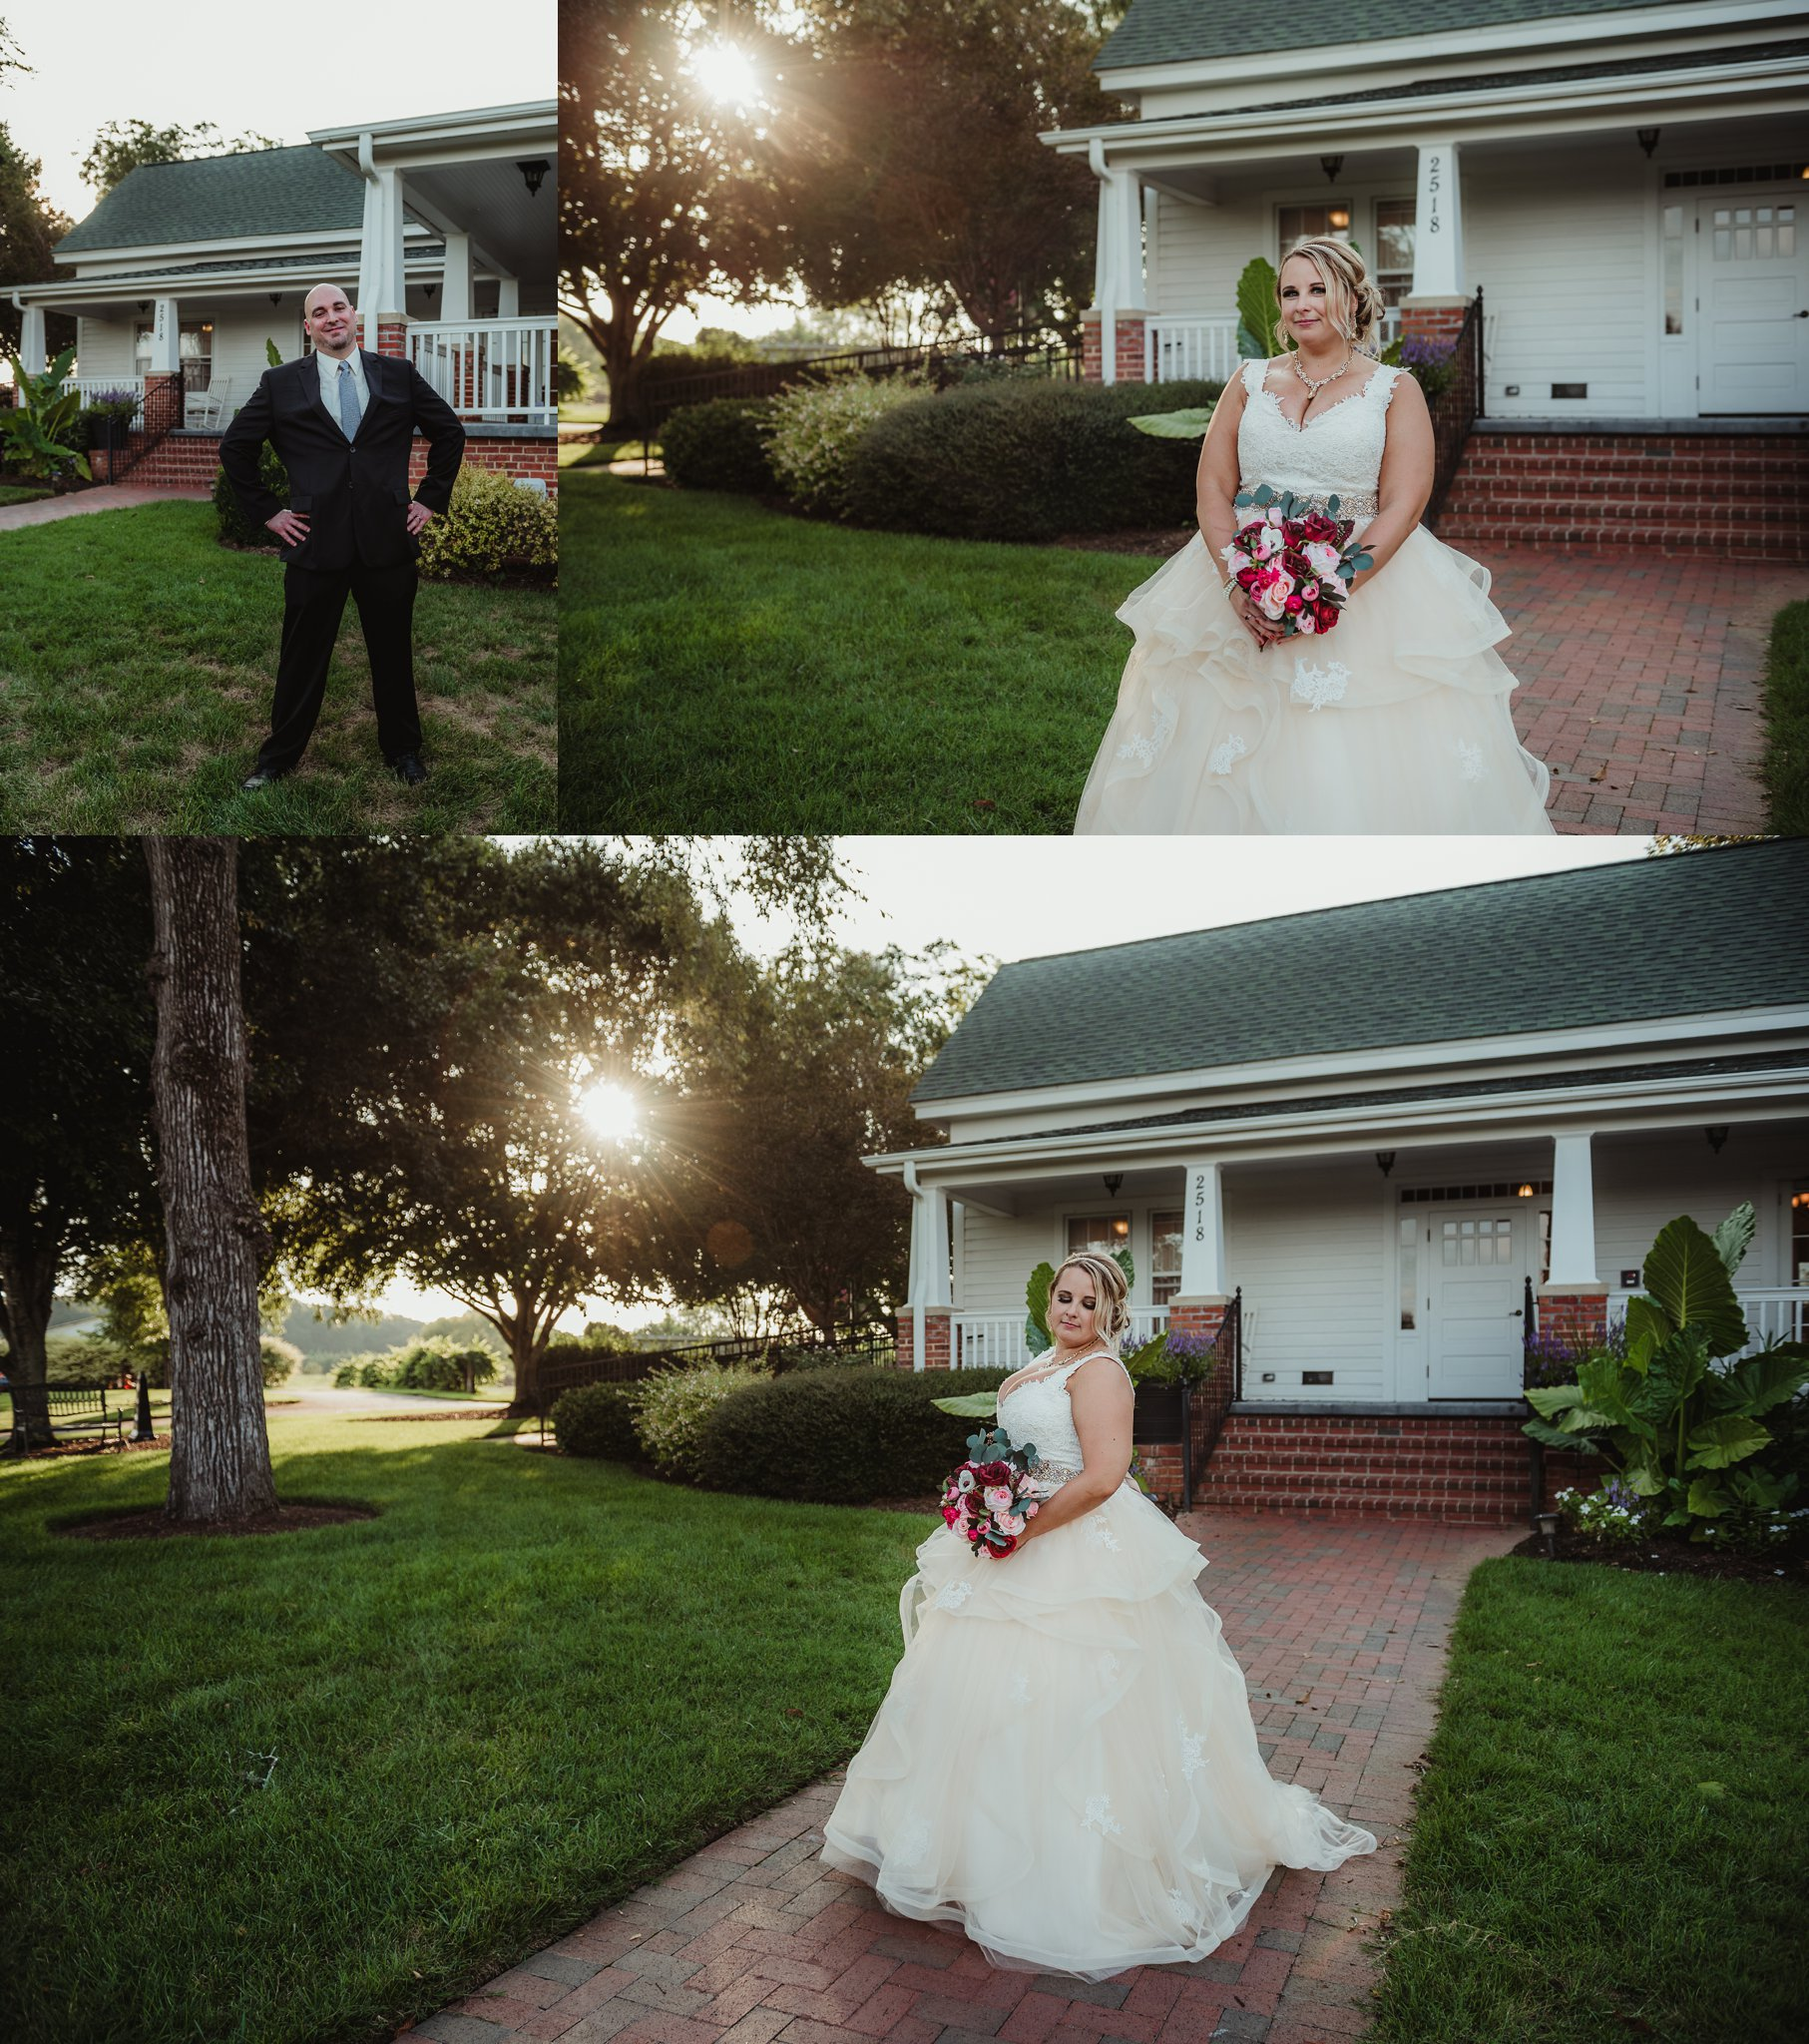 The bride and groom pose for individual portraits at the Rand-Bryan House in Raleigh, photos by Rose Trail Images.